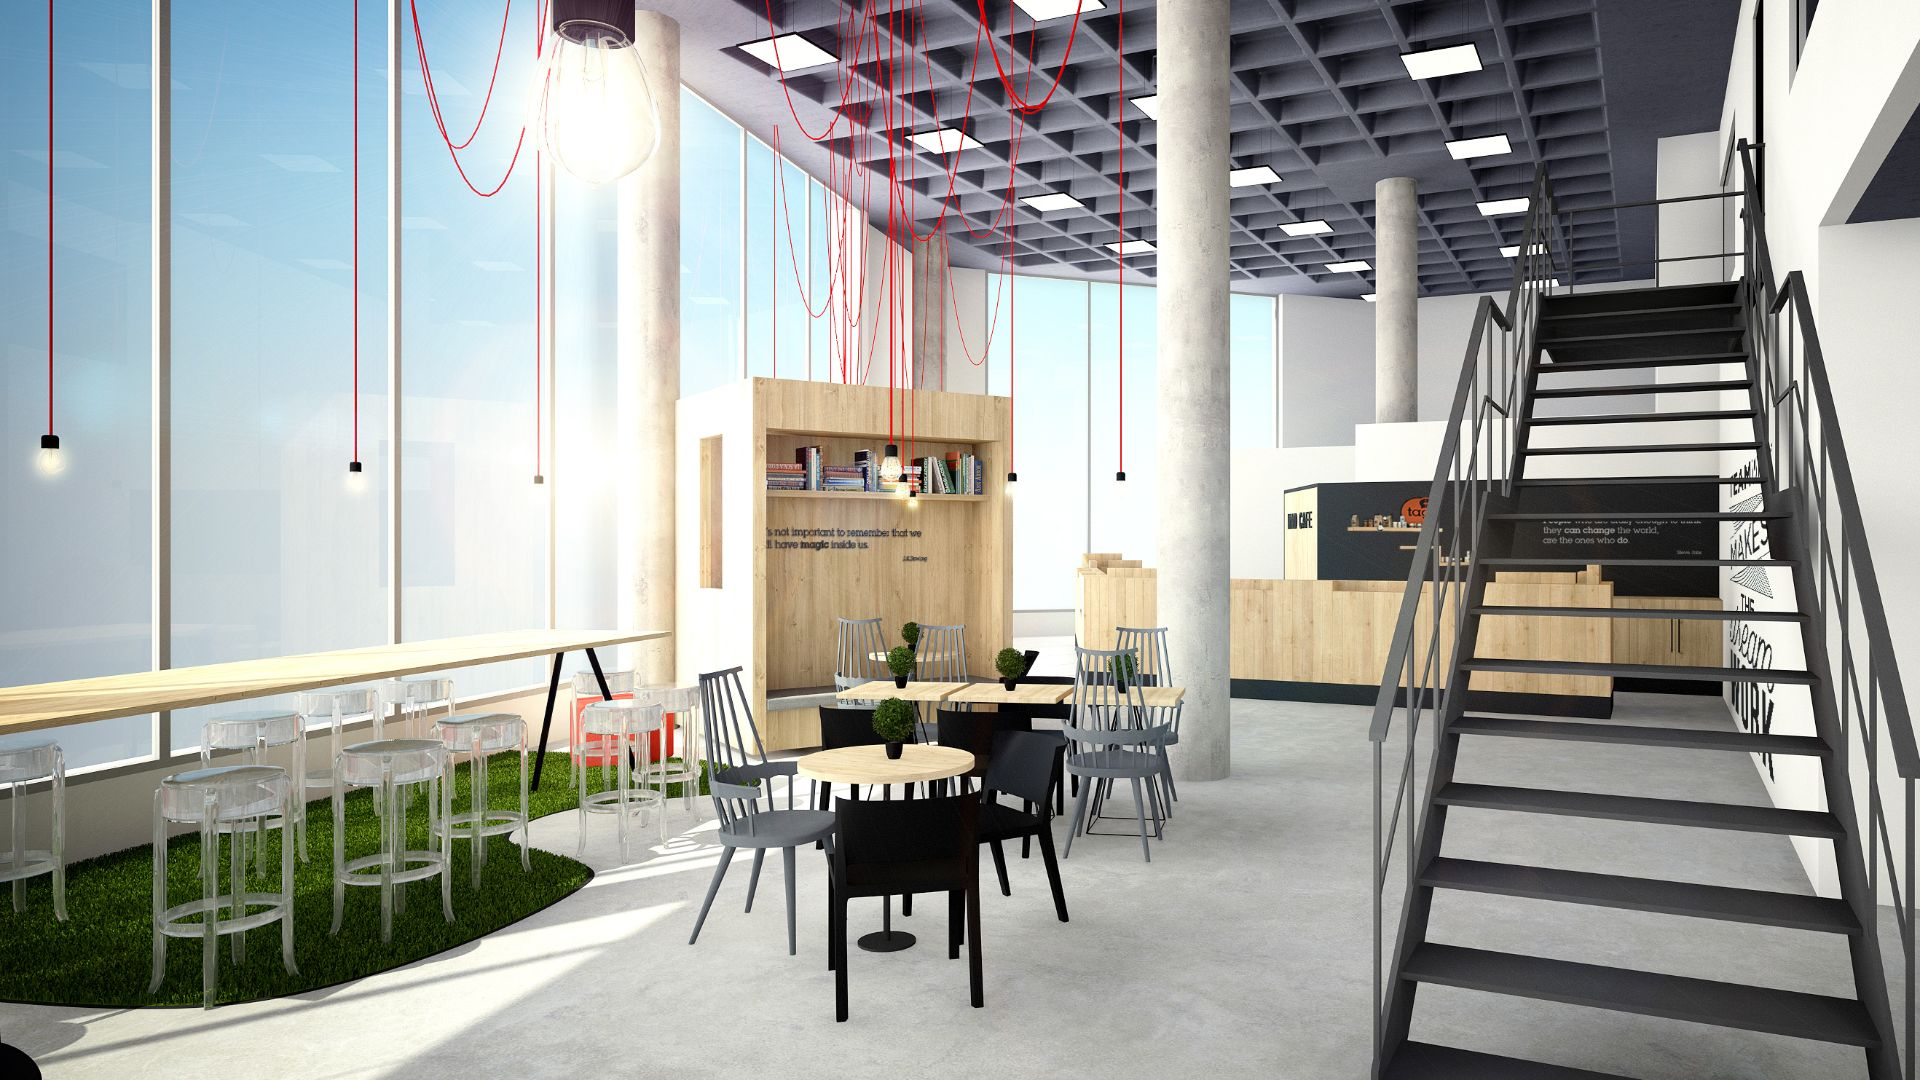 Picture of Private terrace / Terraza privada, a meeting room in the undefined undefined